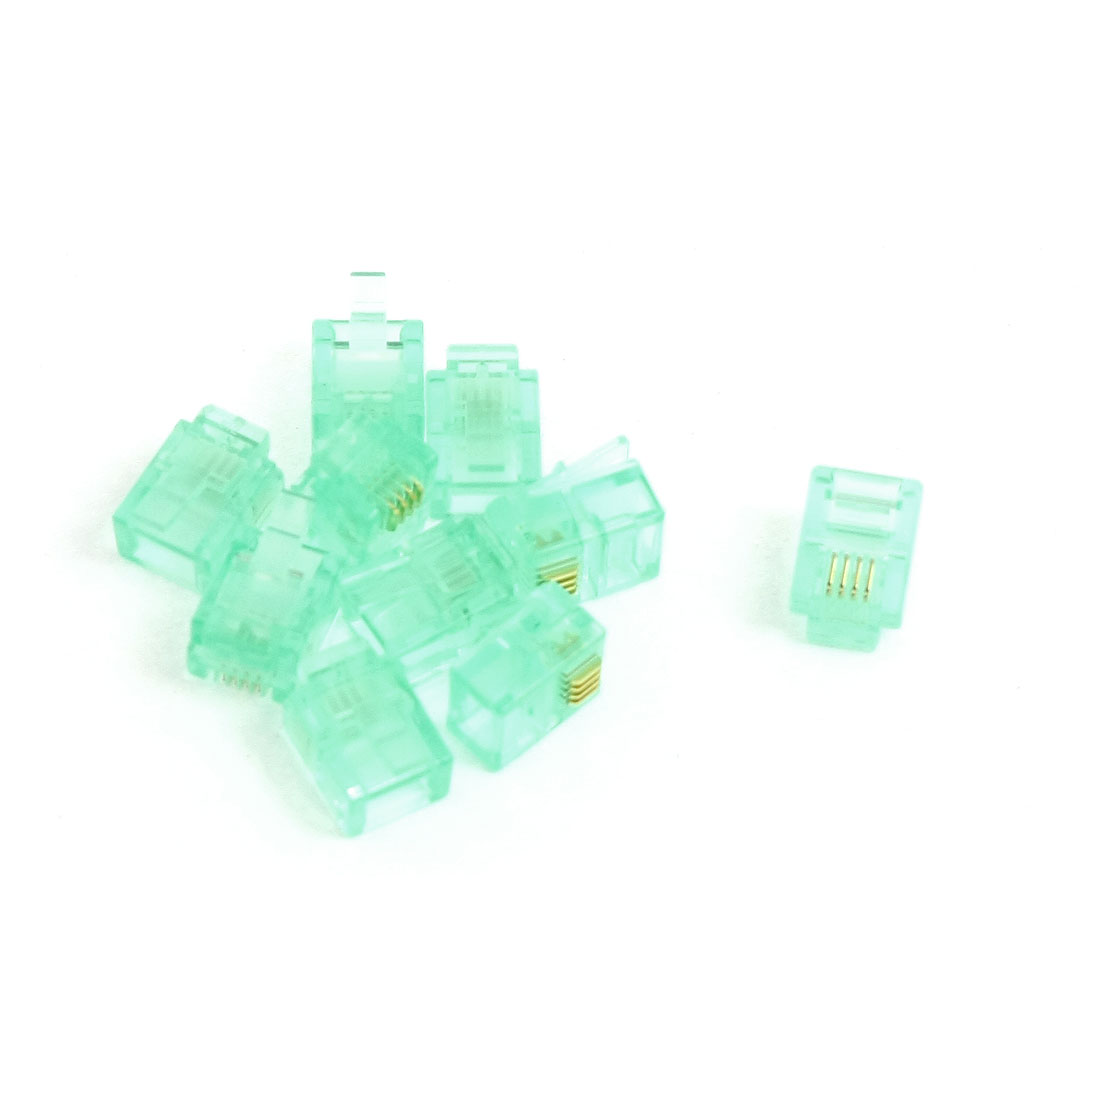 10 Pcs 6P4C RJ11 Connector Light Green for Telephone Cable